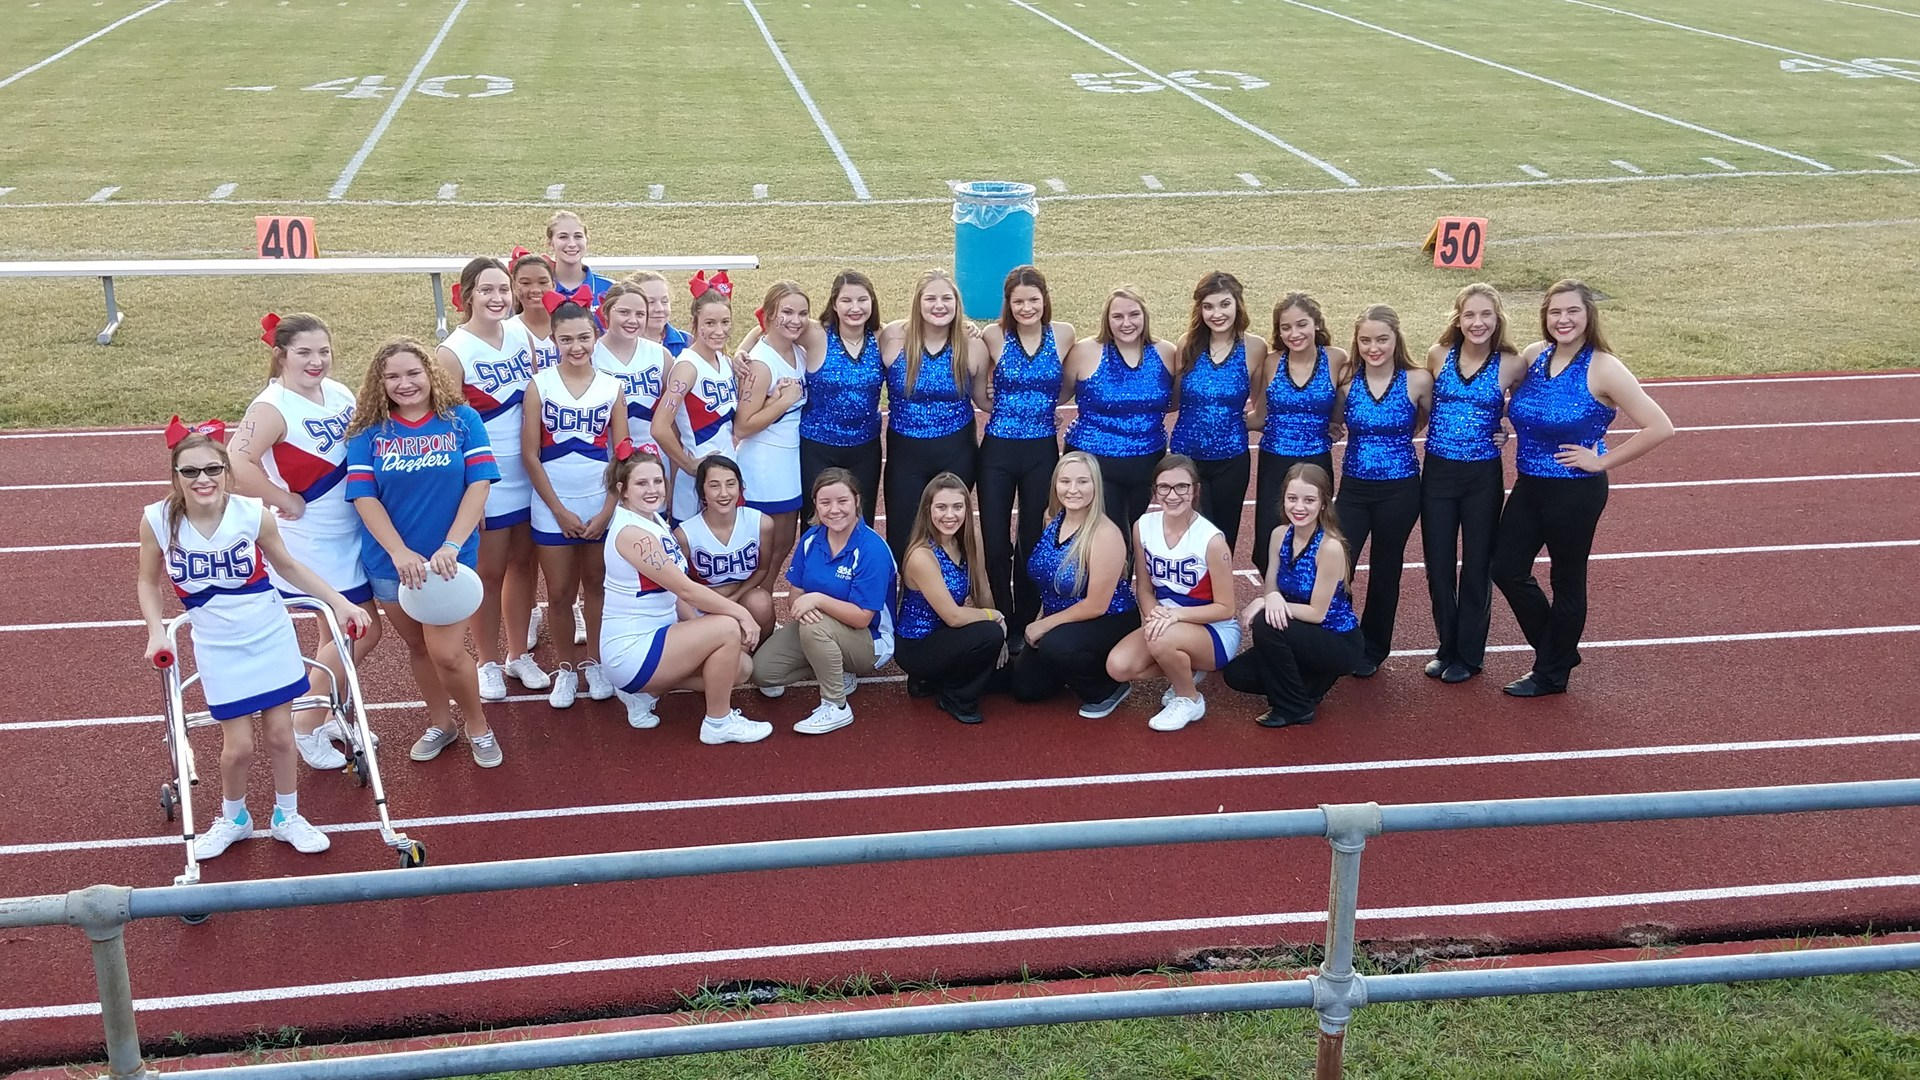 Tarpon Dazzlers and Cheerleaders